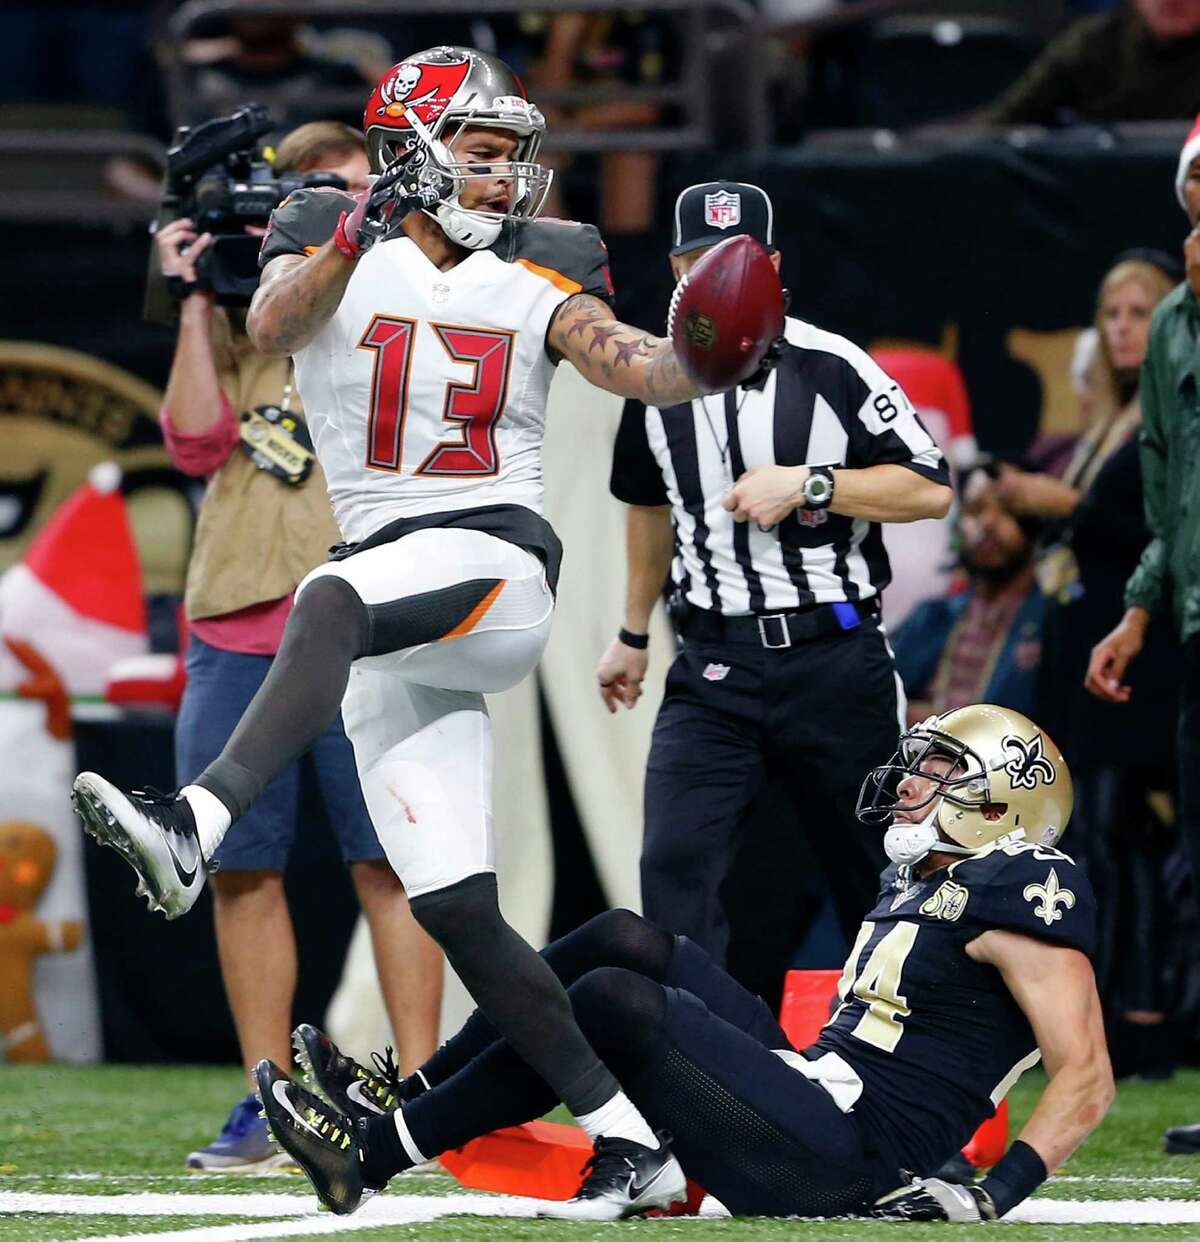 Tampa Bay Buccaneers wide receiver Mike Evans (13) scores on a touchdown reception over New Orleans Saints cornerback Sterling Moore (24) in the second half of an NFL football game in New Orleans, Saturday, Dec. 24, 2016. (AP Photo/Butch Dill)